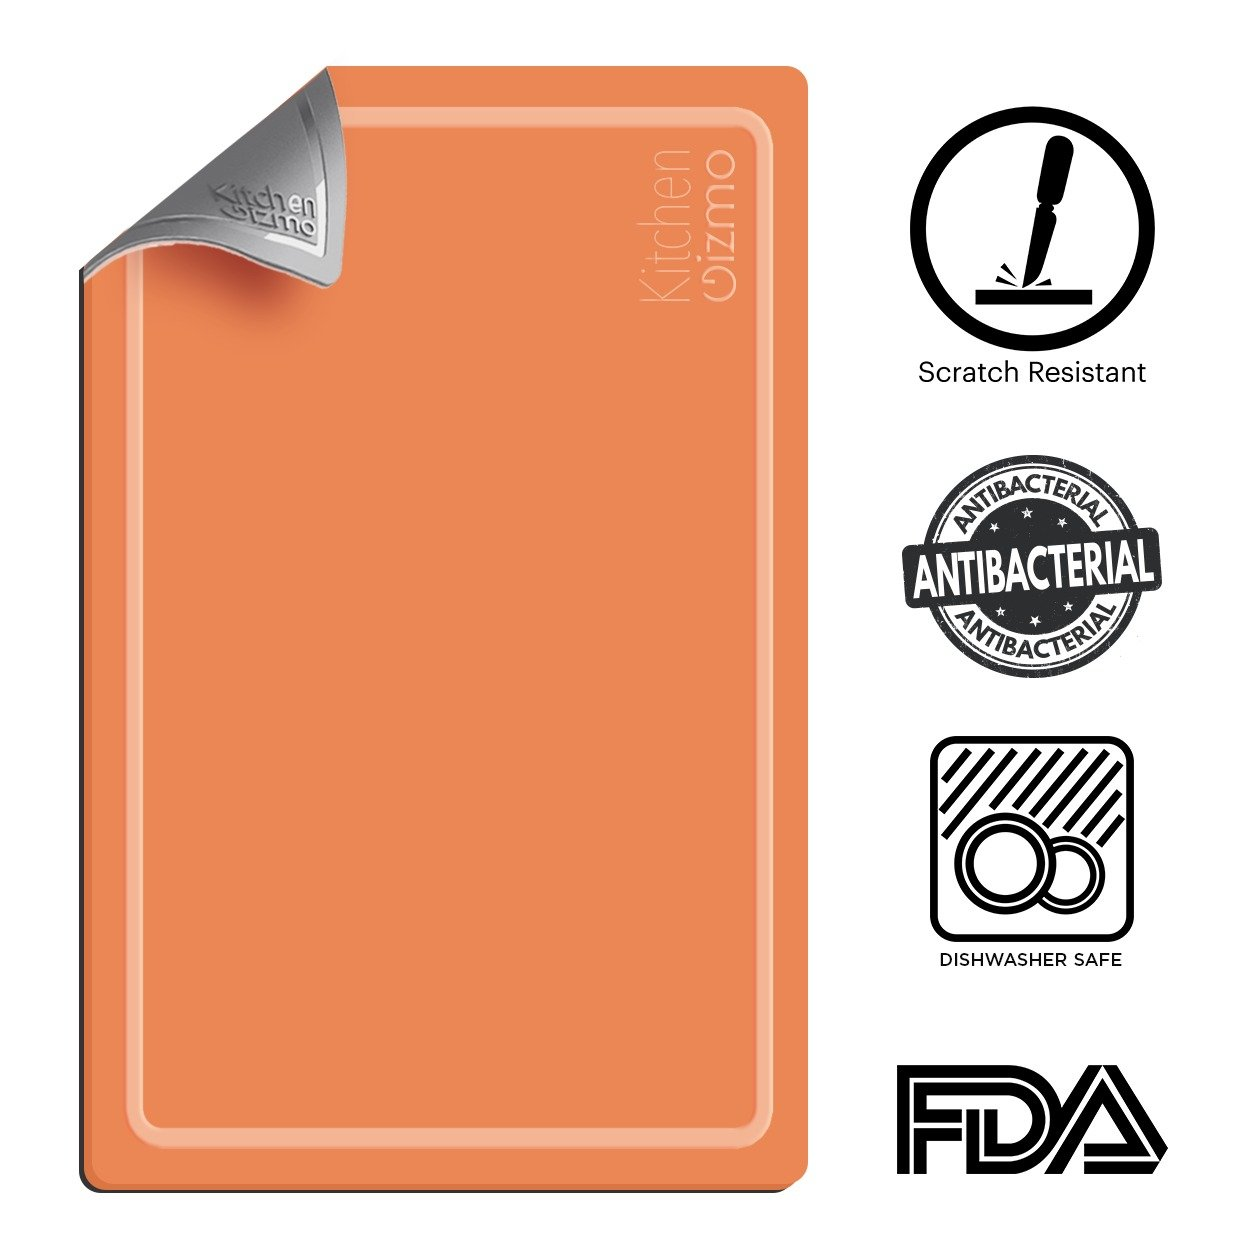 Extra Thick Flexible Cutting Board with Juice Groove | Heat and Cut Resistant, Antibacterial, BPA Free and FDA Approved| Dishwasher Safe, Double Sided, Orange and Grey Chopping Board by Kitchen Gizmo